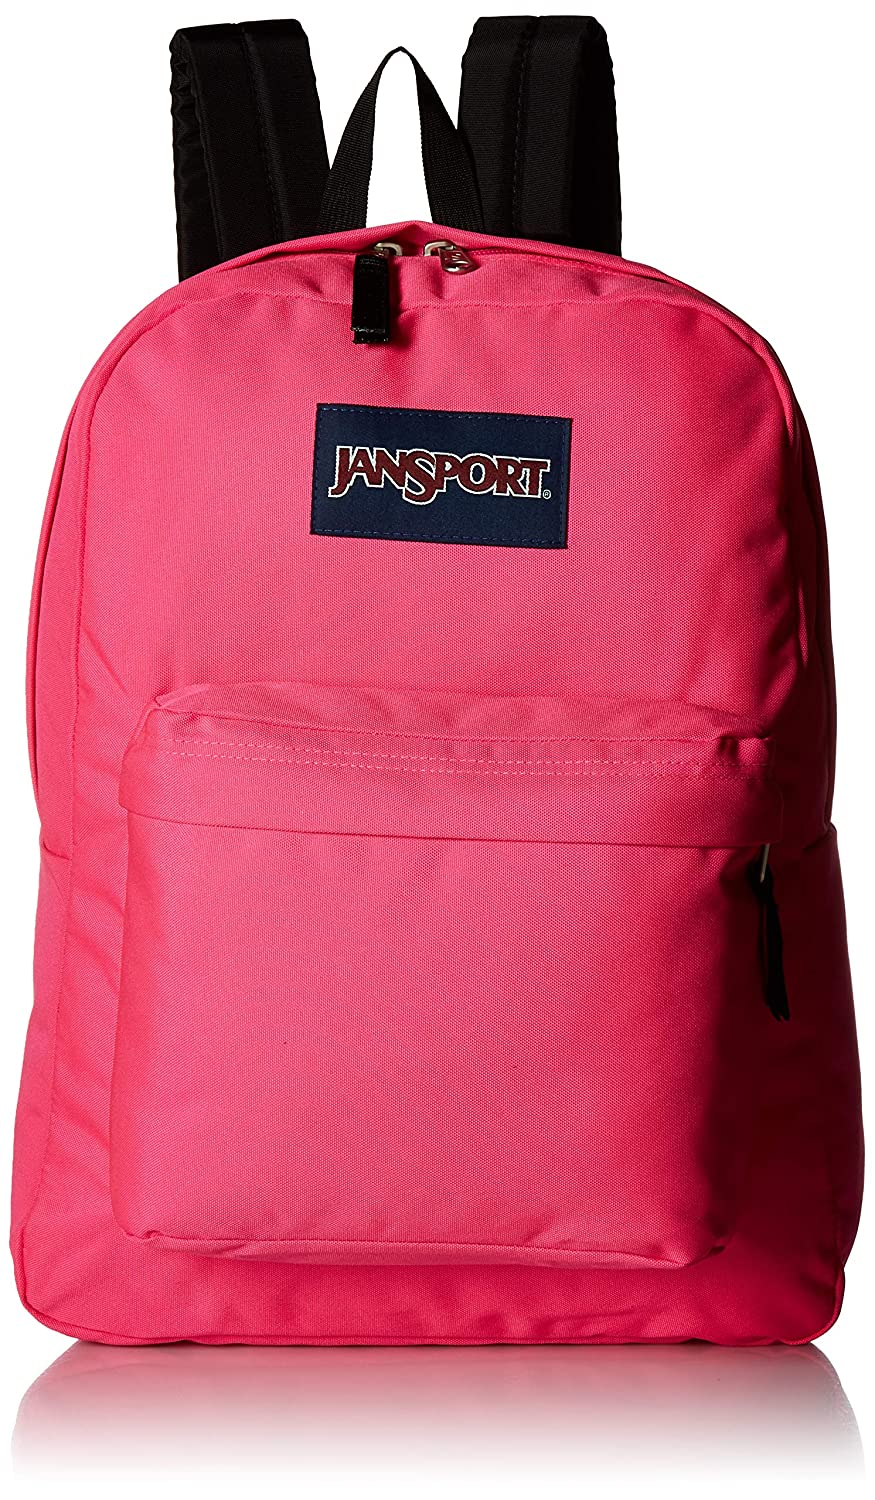 JanSport JS00T5010R4 Superbreak Backpack, Pink Mist